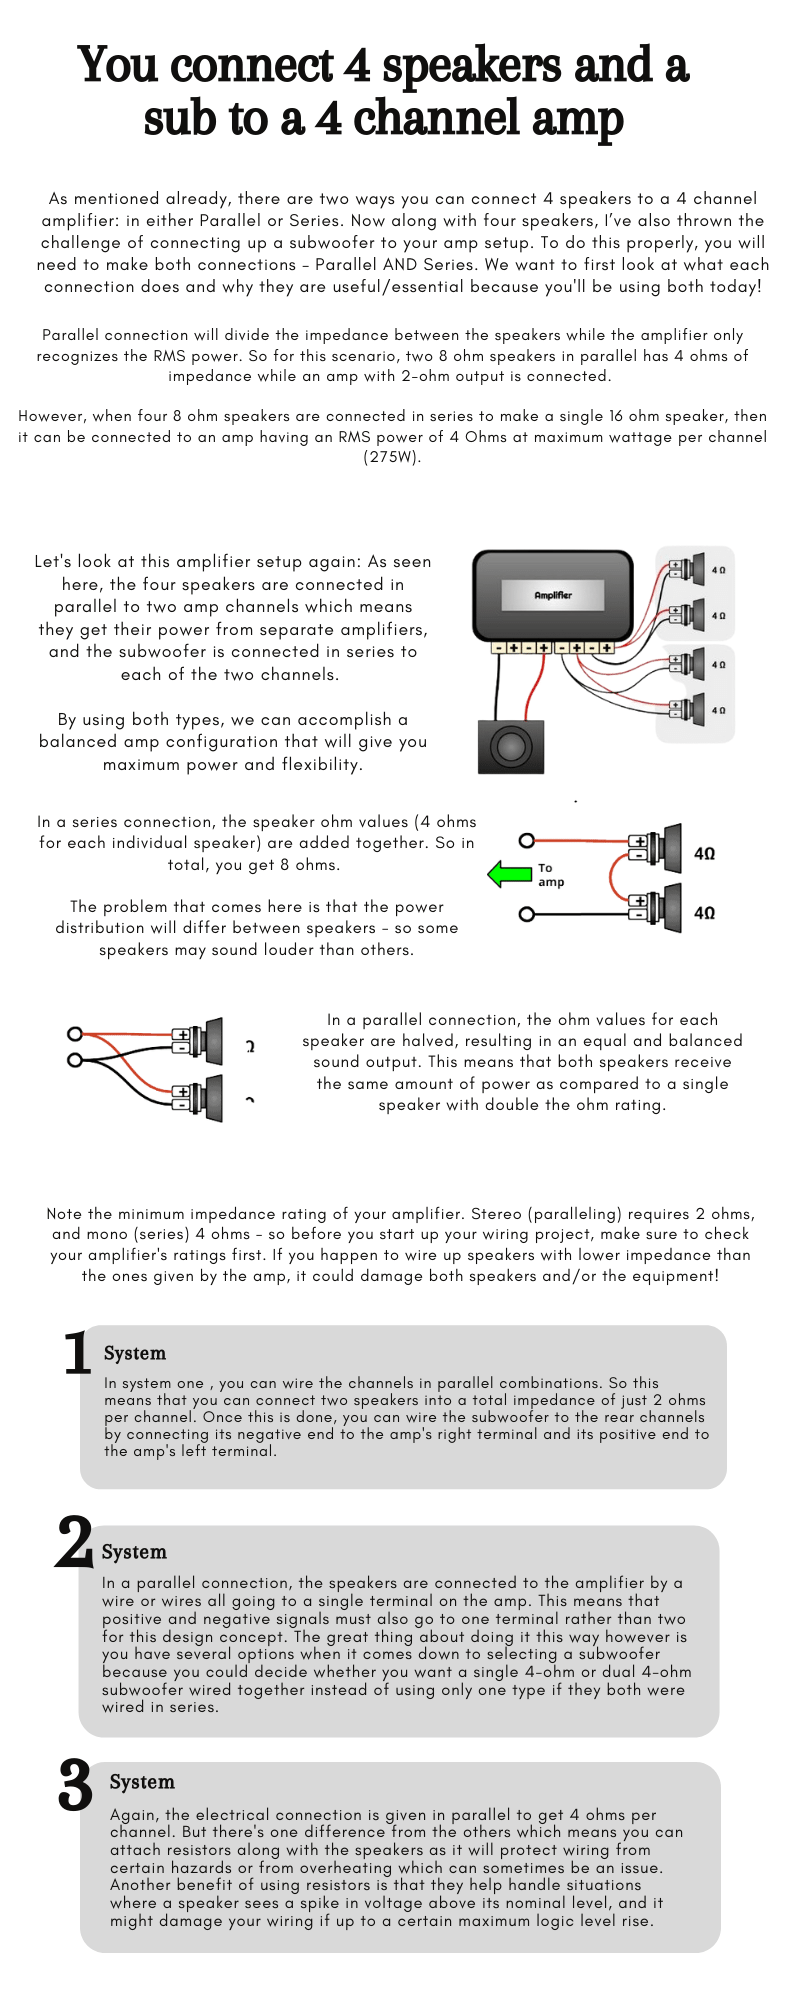 Wondering if if you can run four speakers and a sub-woofer with a 4 channel amp? Not really. The 4 channel amps are generally meant to be used with two speakers and a sub-woofer. If you can connect 4 speakers and a sub-woofer to a 4 channel amplifier, the amplifier will not give the best performance and it might even damage. So, it's better to avoid such an action and use a 5 channel amp if possible.